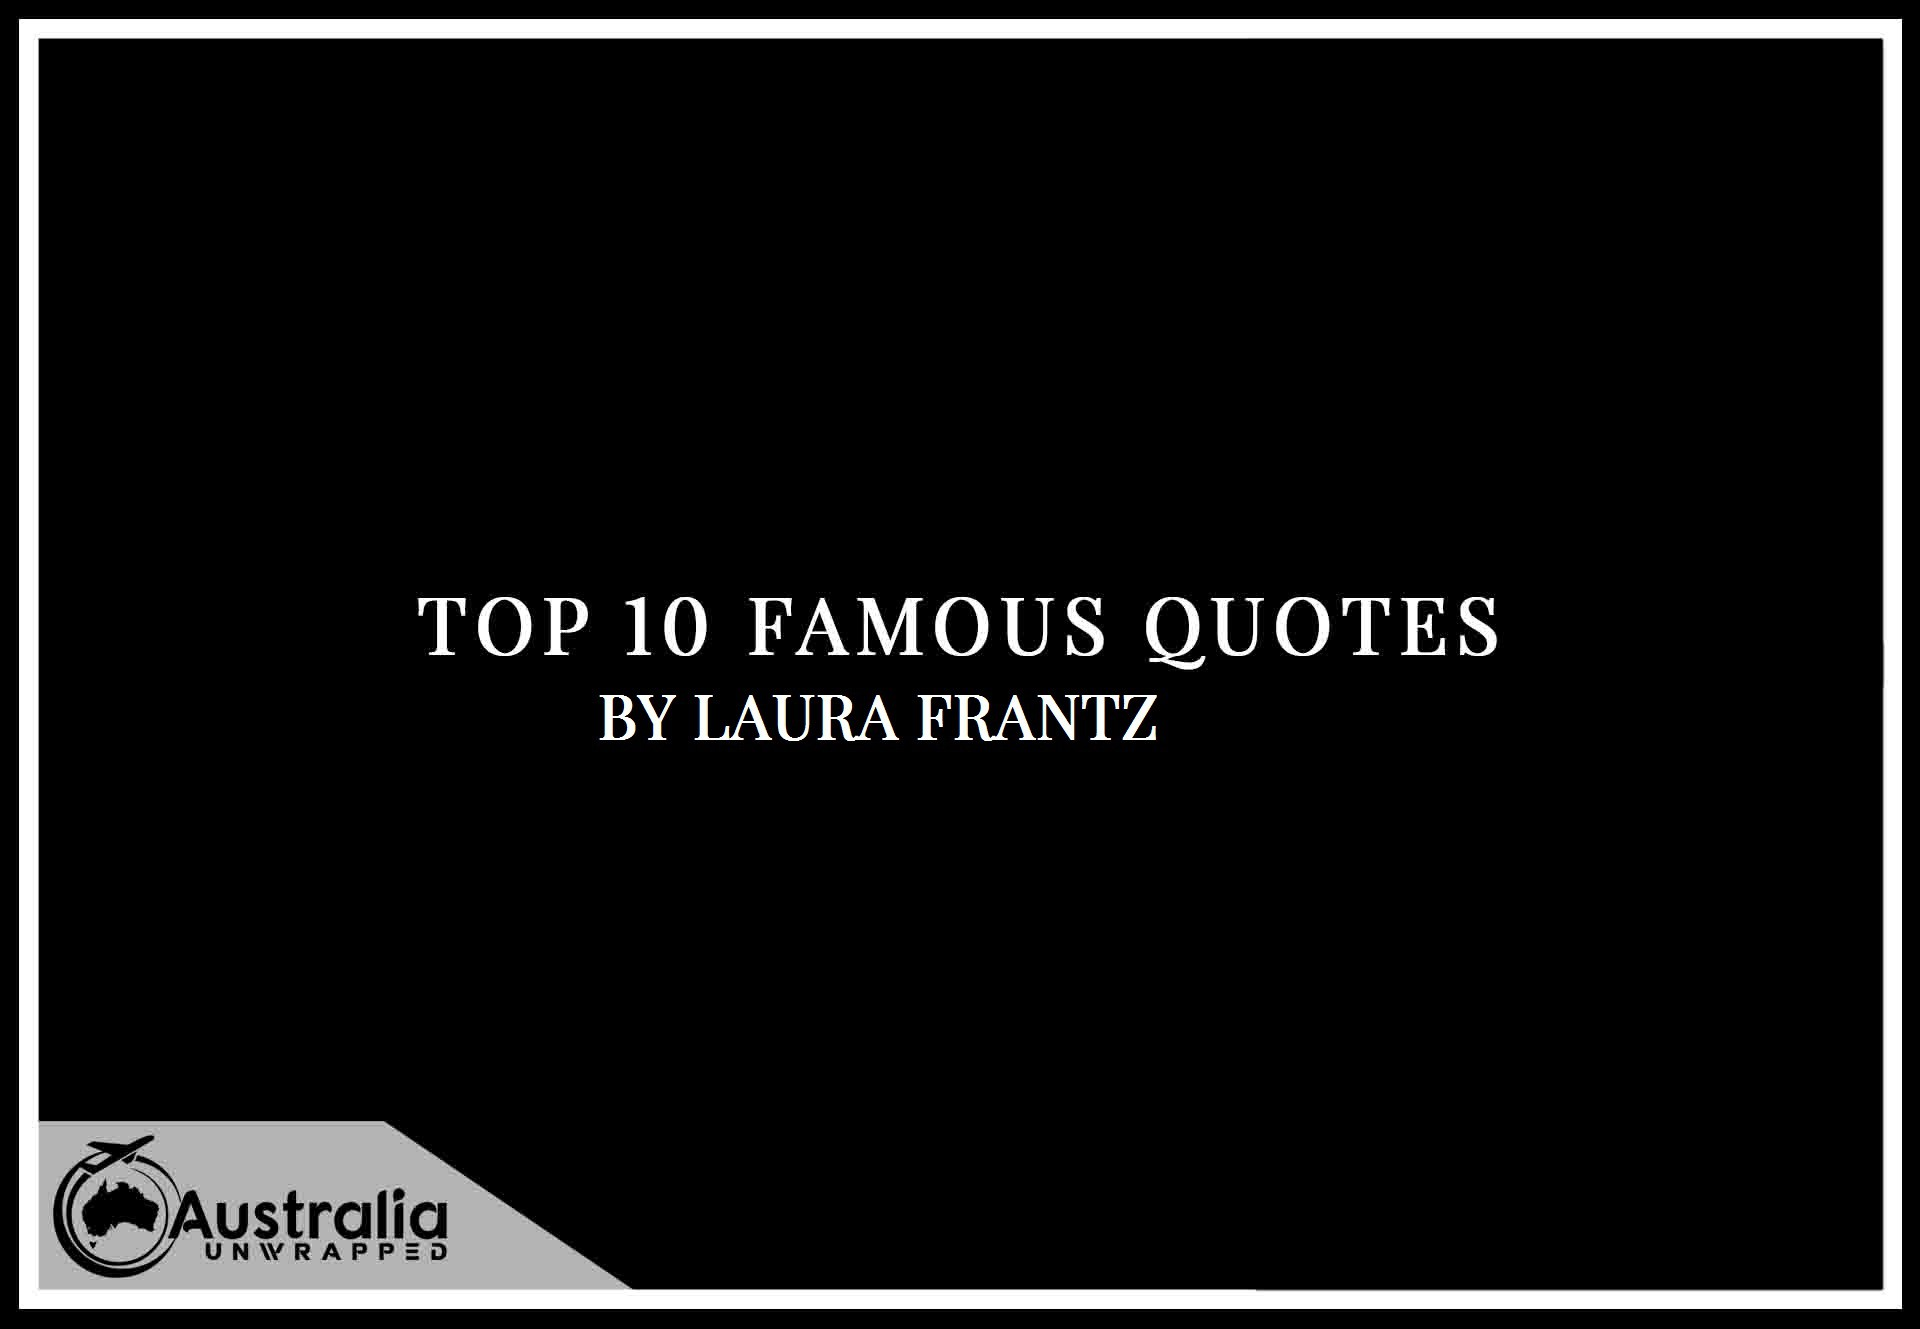 Laura Frantz's Top 10 Popular and Famous Quotes